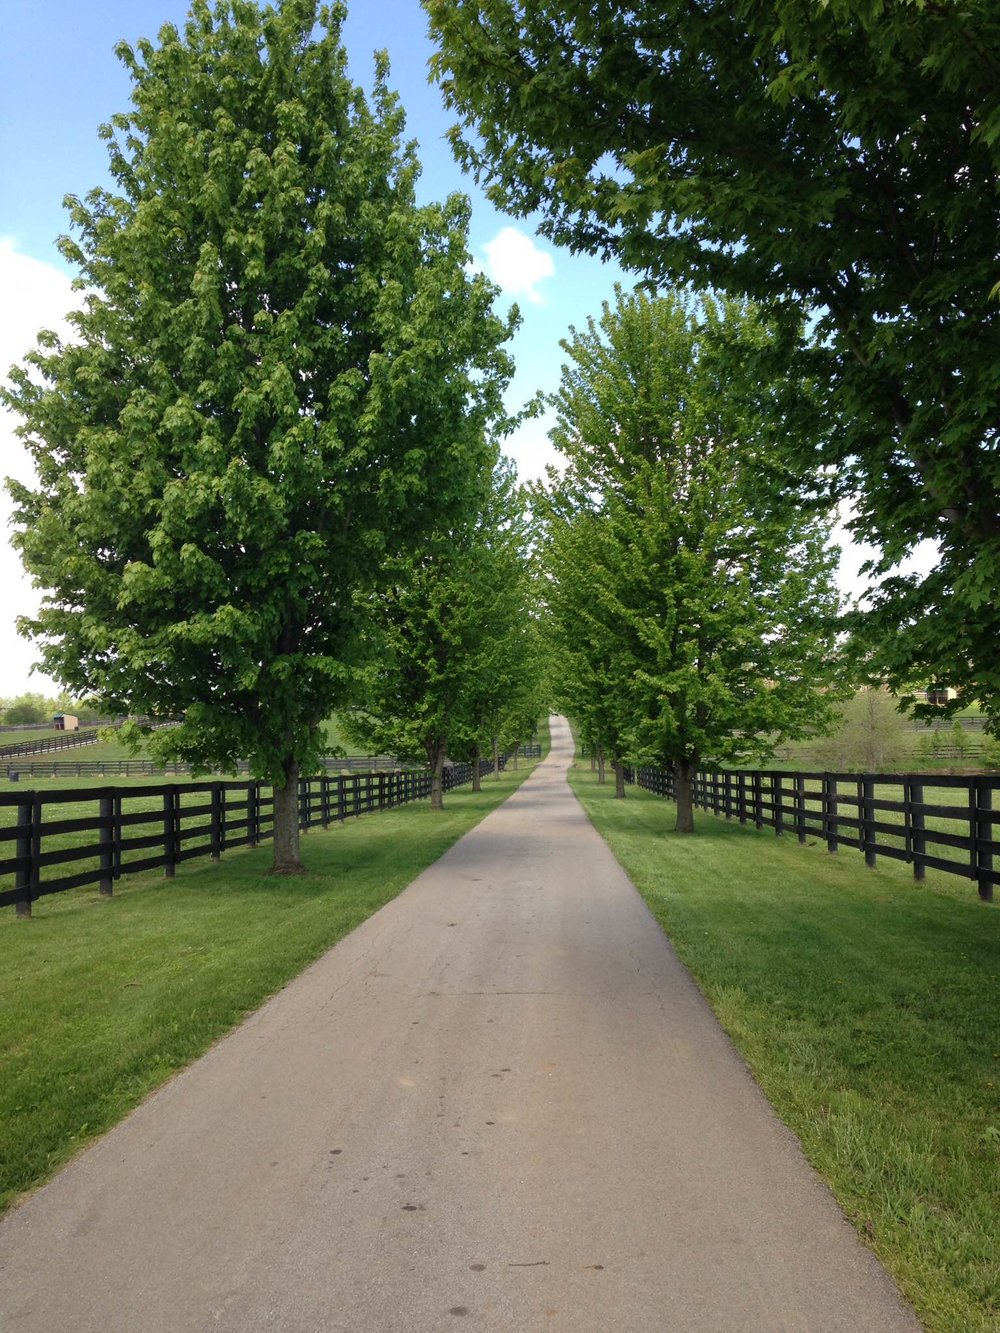 Main path through Old Friends Farm during the springtime